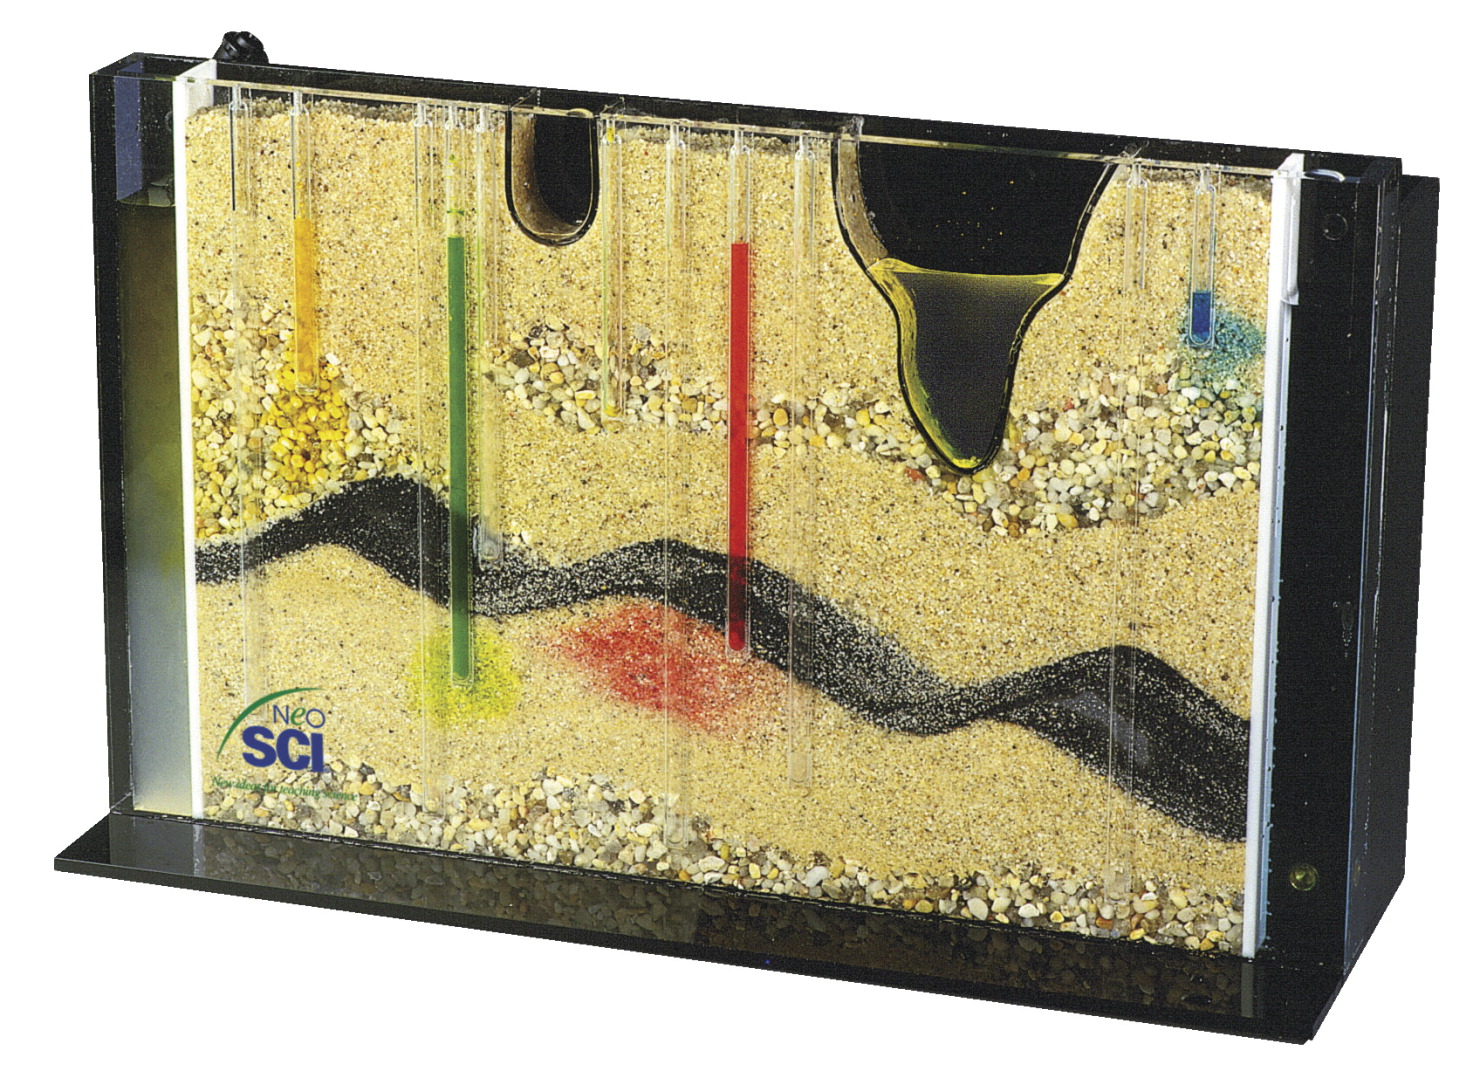 Neo/SCI Groundwater Exploration Activity Model, 20 X 5 X 12-1/2 in